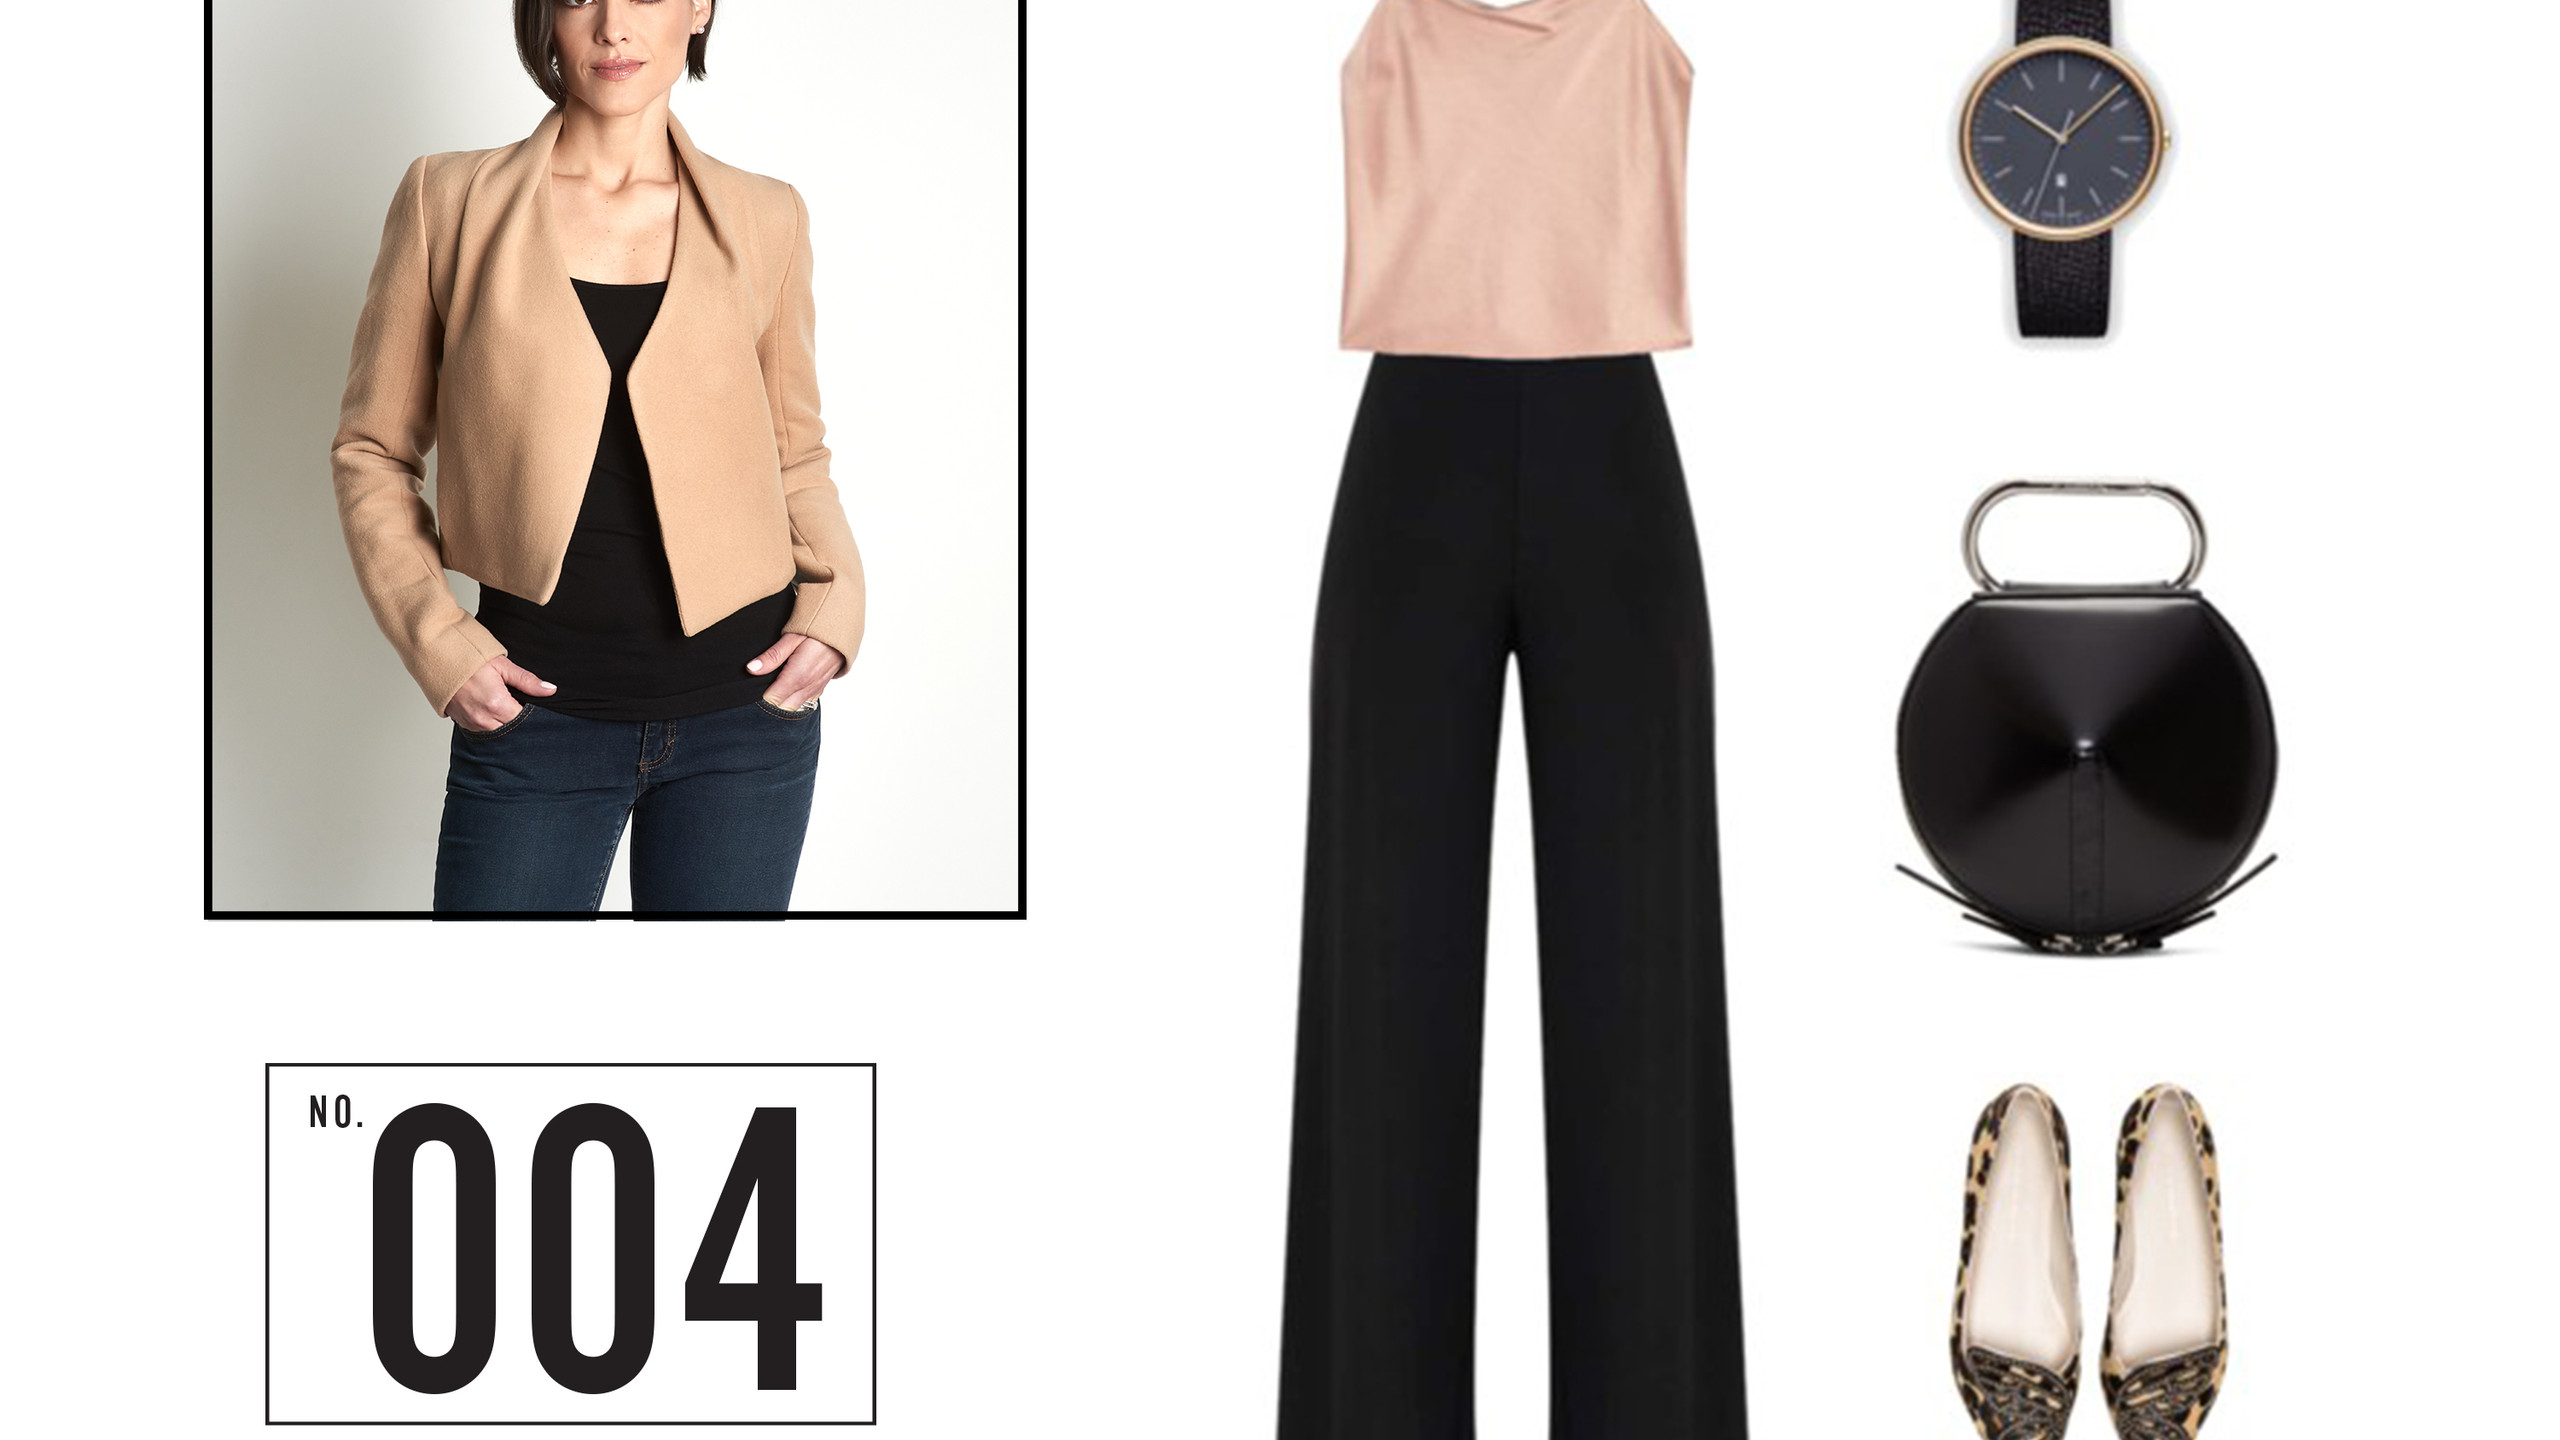 Wear it with a pair of hi-waisted wide leg trousers and stylish flats.